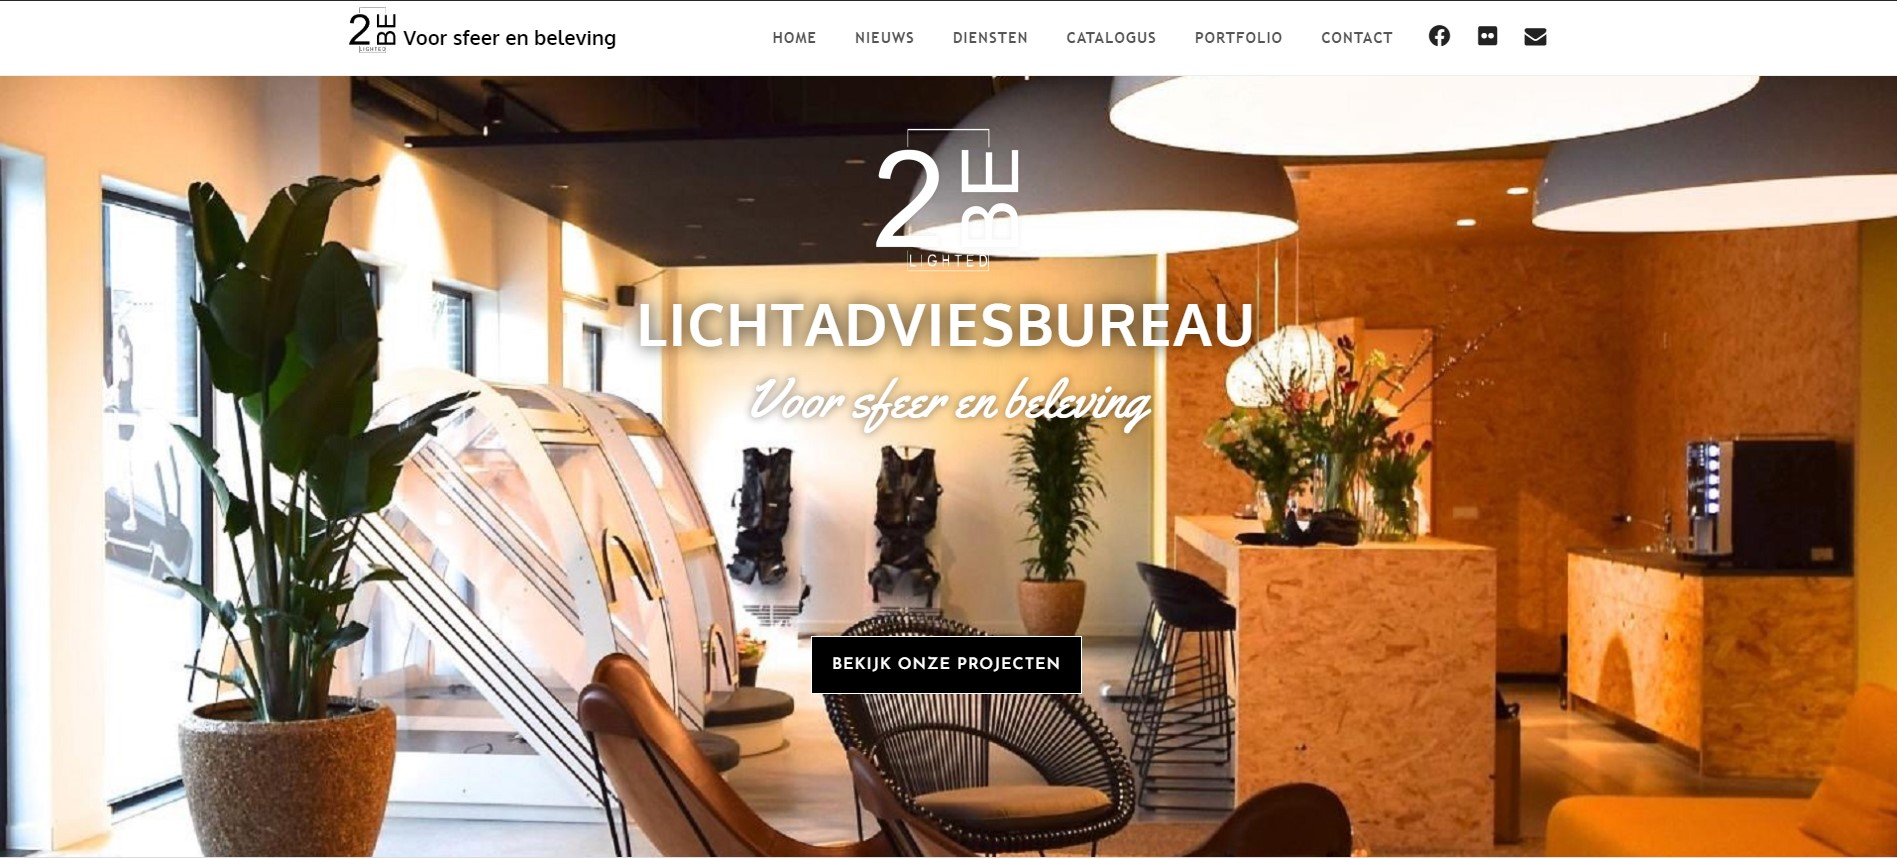 Nieuwe website van Lichtadvies buro 2BE LIGHTED-LightWorks vanaf heden in testfase online